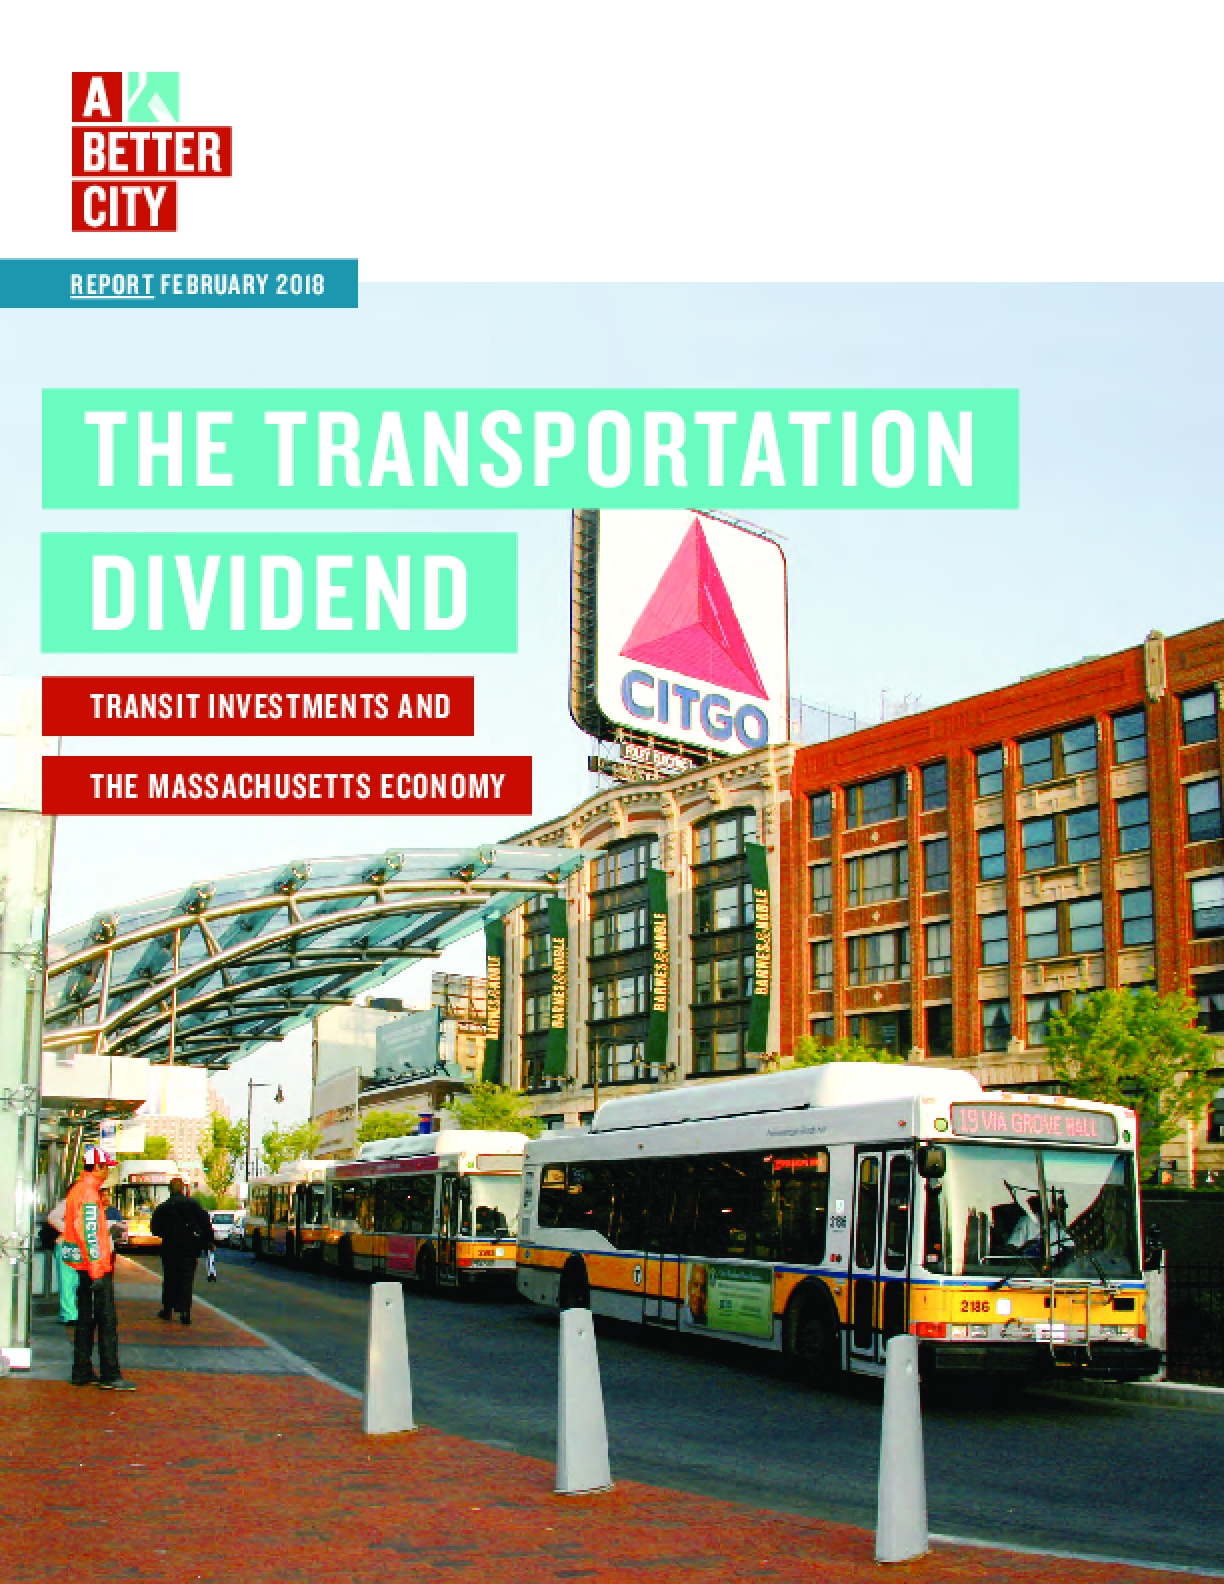 The Transportation Dividend: Transit Investments and the Massachusetts Economy